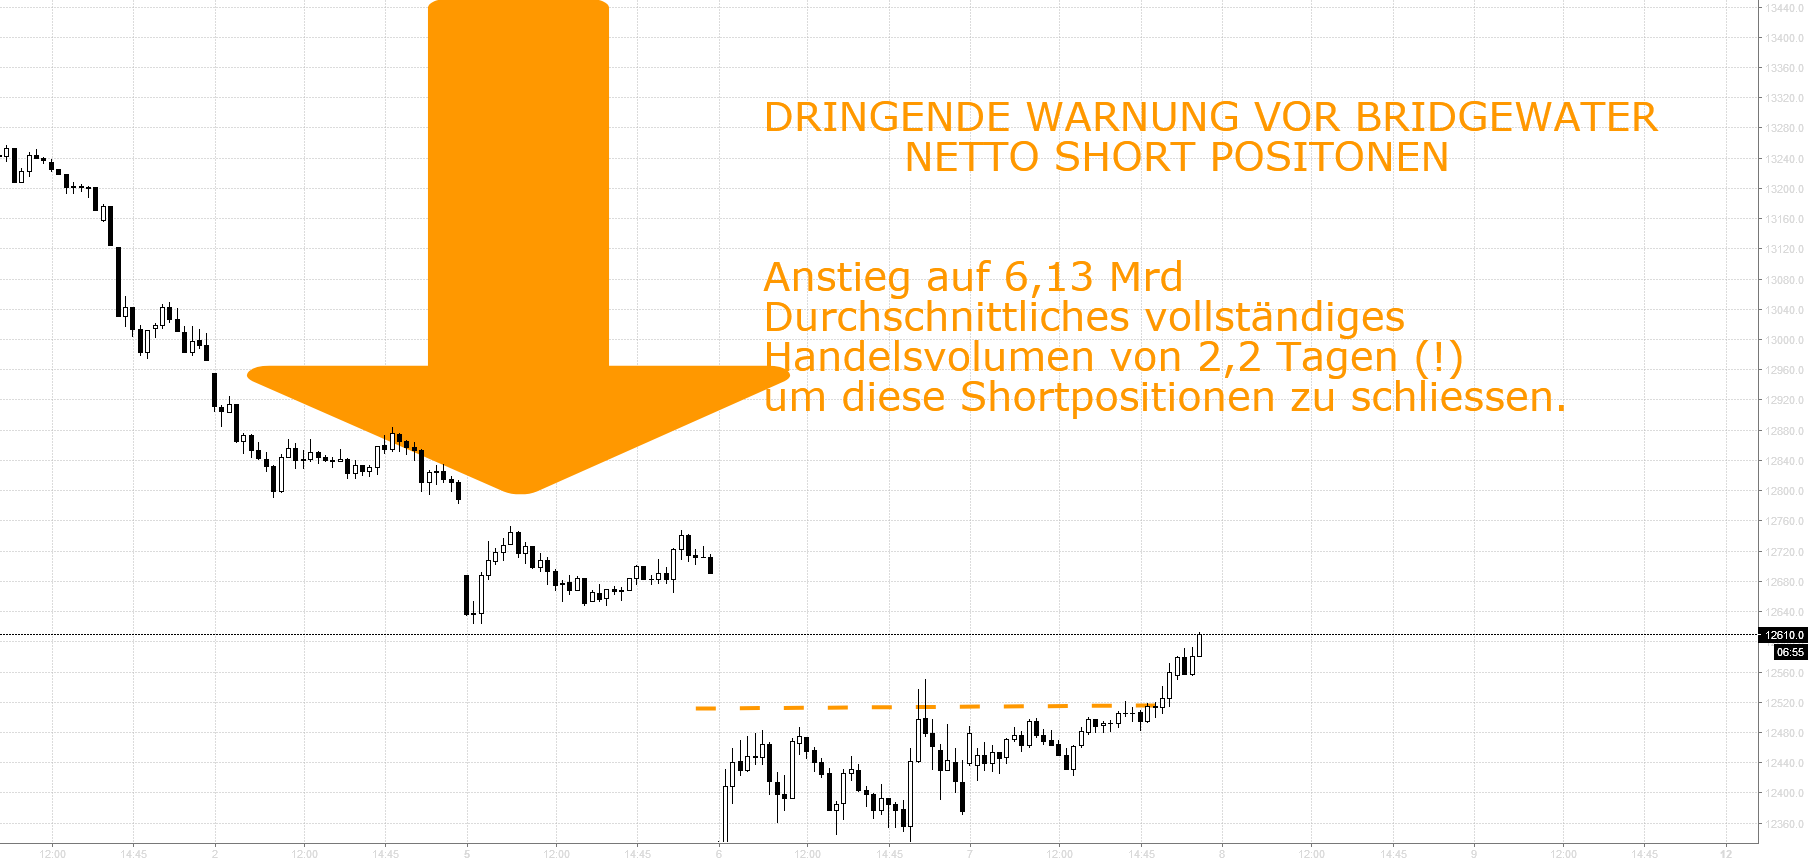 DRINGENDE WARNUNG VOR BRIDGEWATER NET SHORT POSITONEN